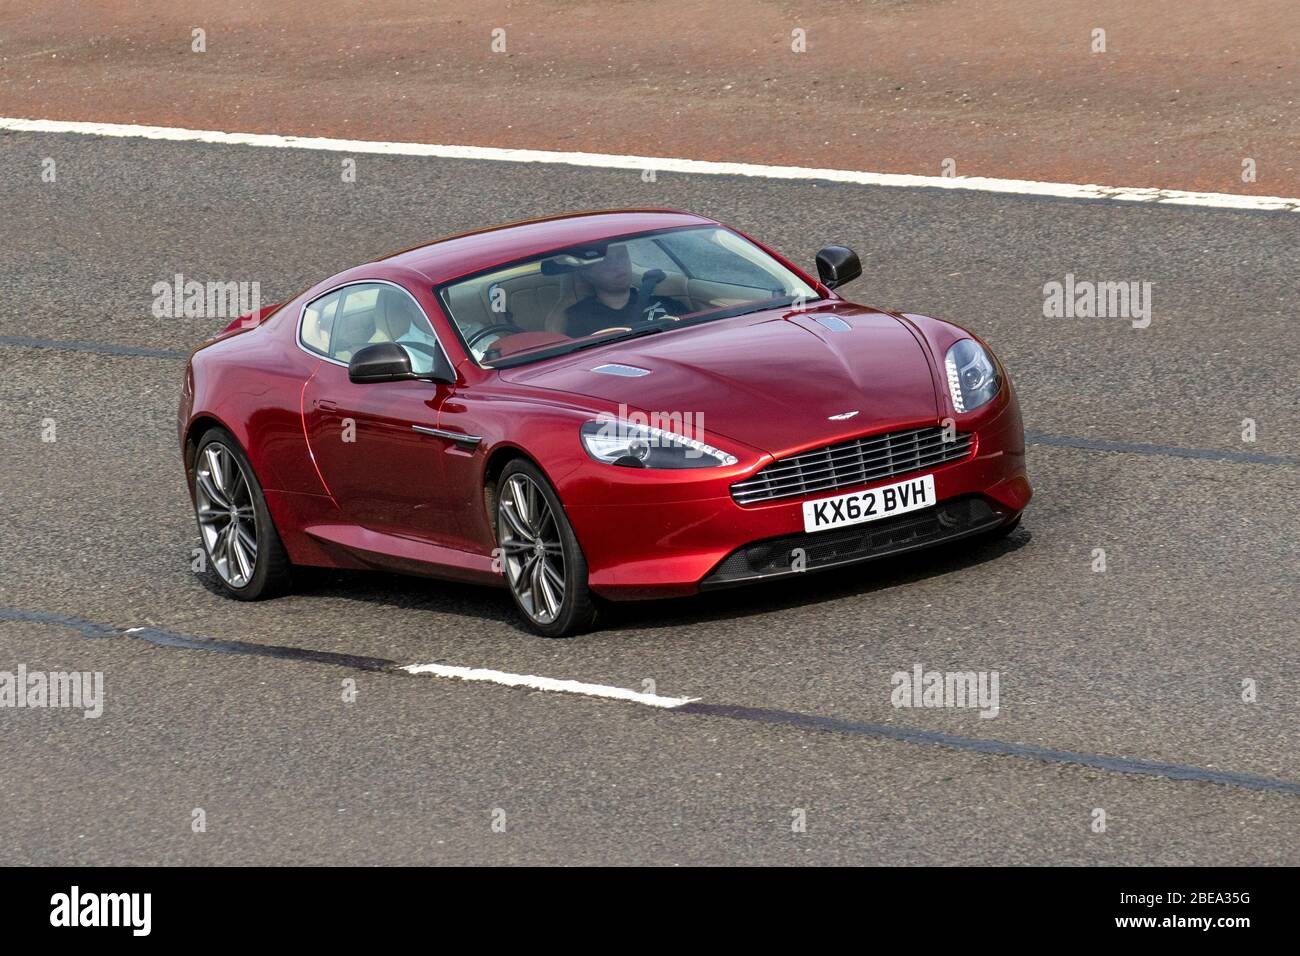 2012 Red Aston Martin Db9 5 9 Touchtronic Ii 2dr 2 2 2 Door Automatic Petrol Coupe Vehicular Traffic Moving Vehicles Driving Vehicle On Uk Roads Motors Motoring On The M6 Motorway Highway Stock Photo Alamy